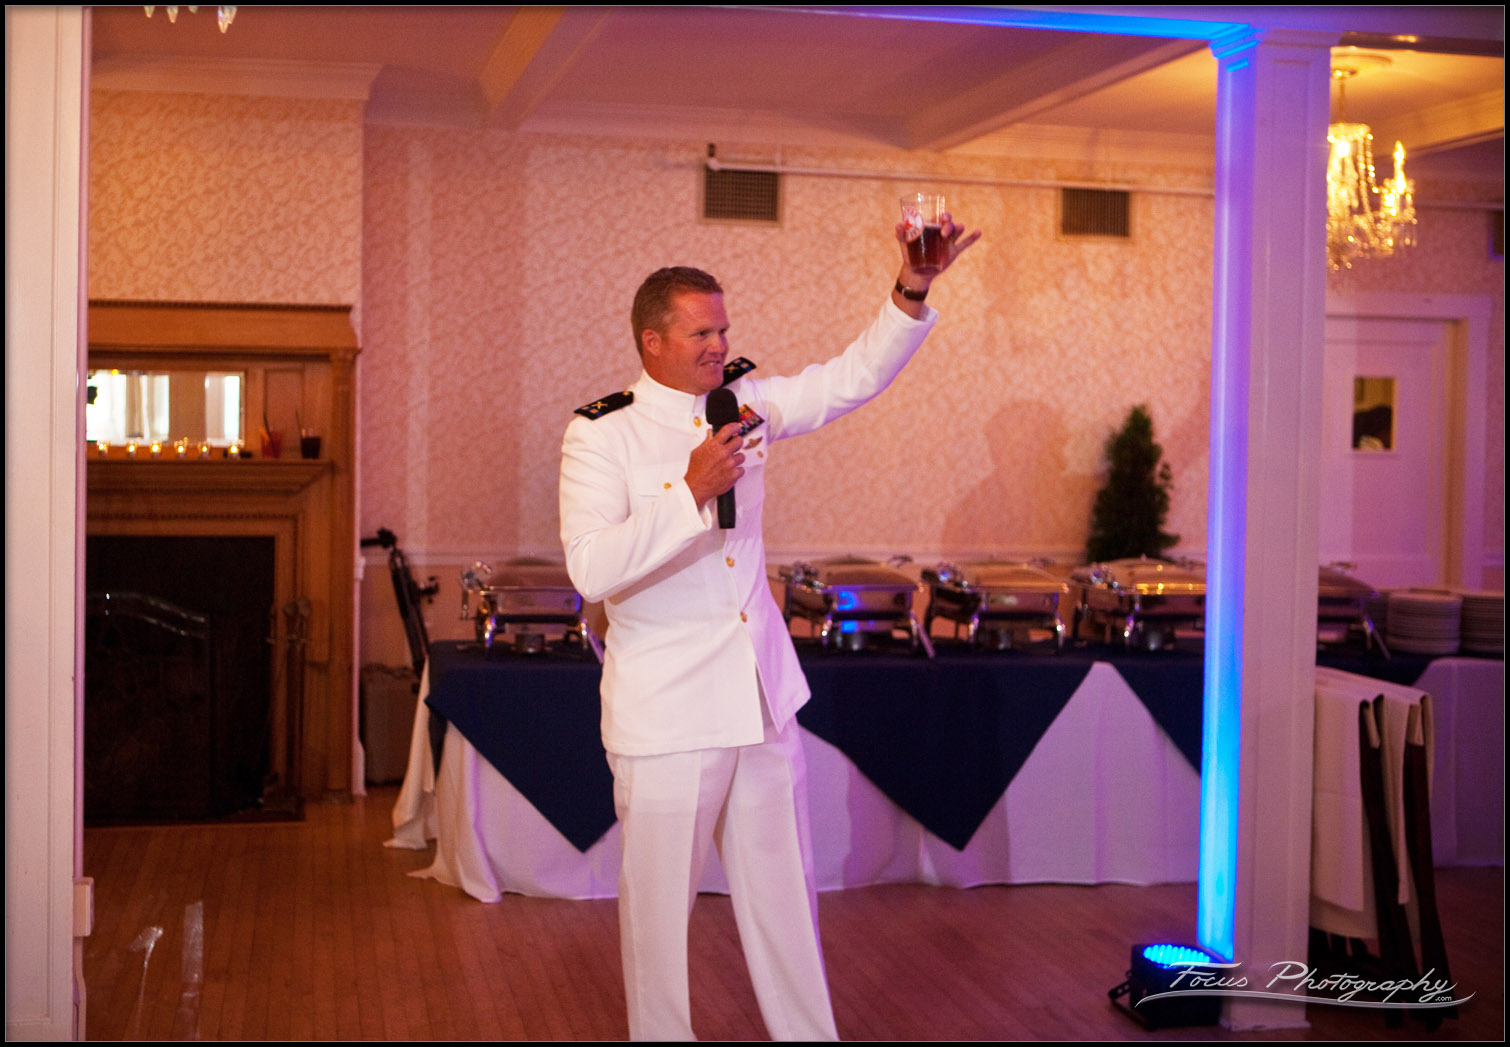 The best man toasts the bride and groom